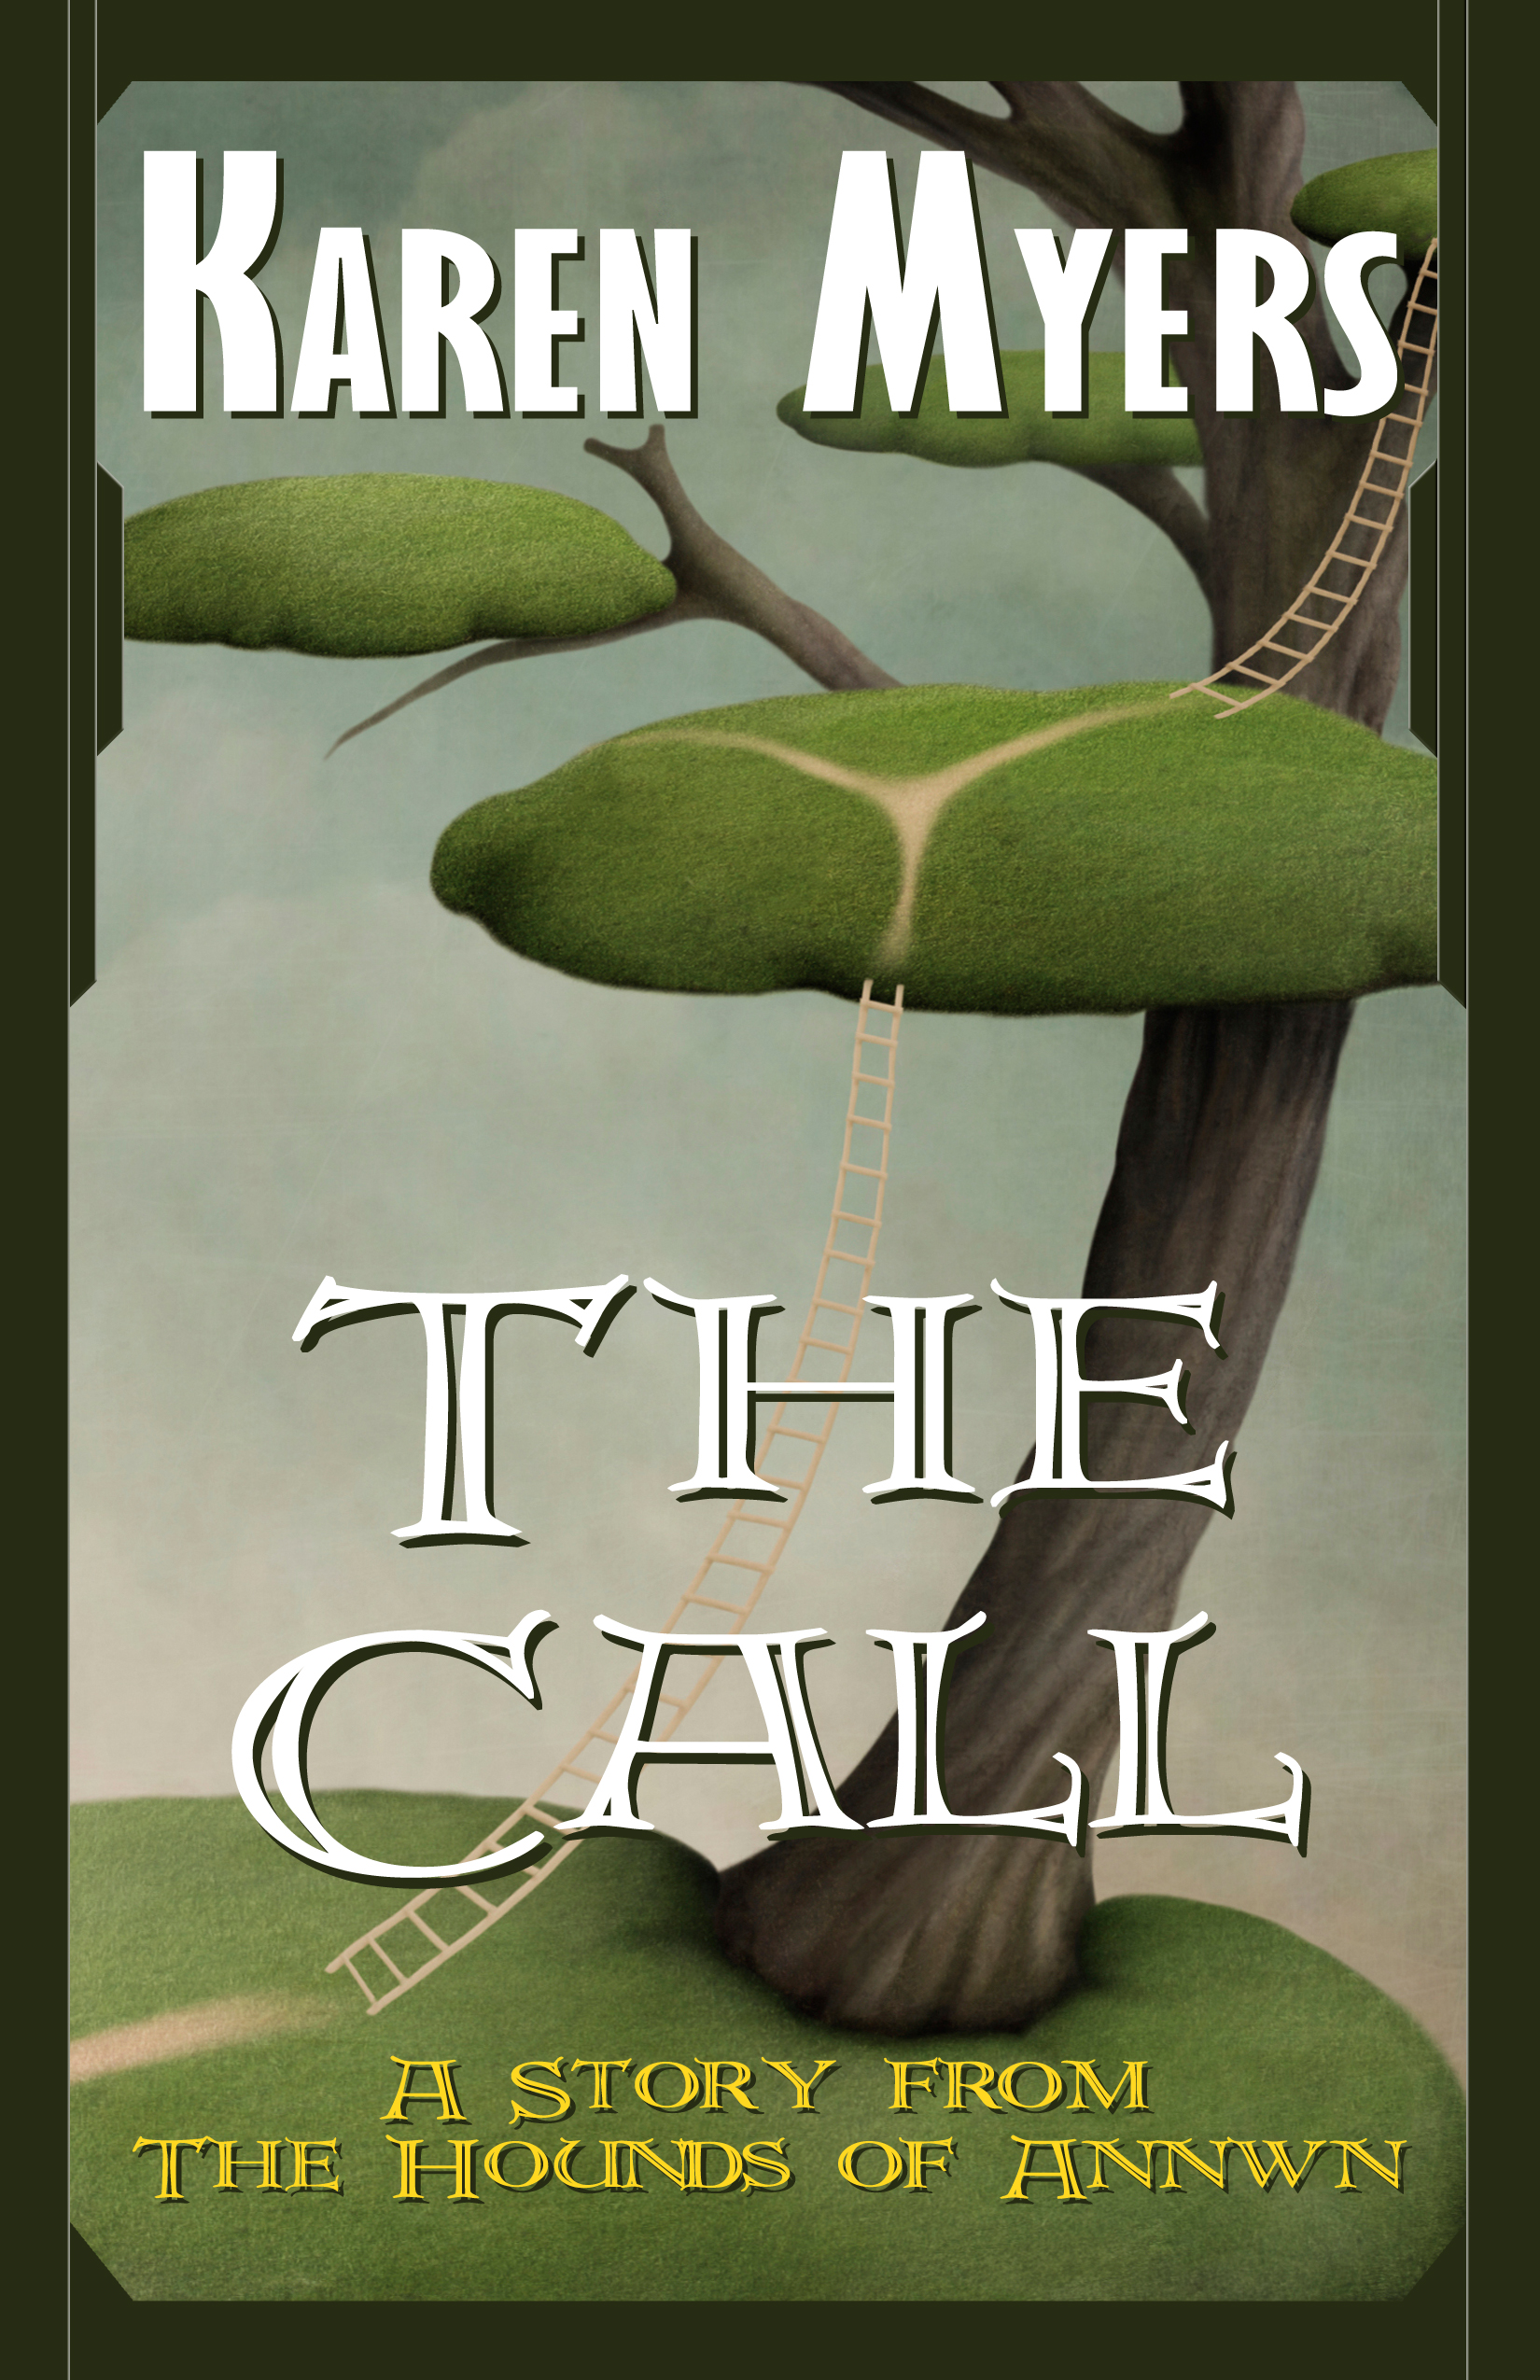 The Call - Full Front Cover - Symmetrical